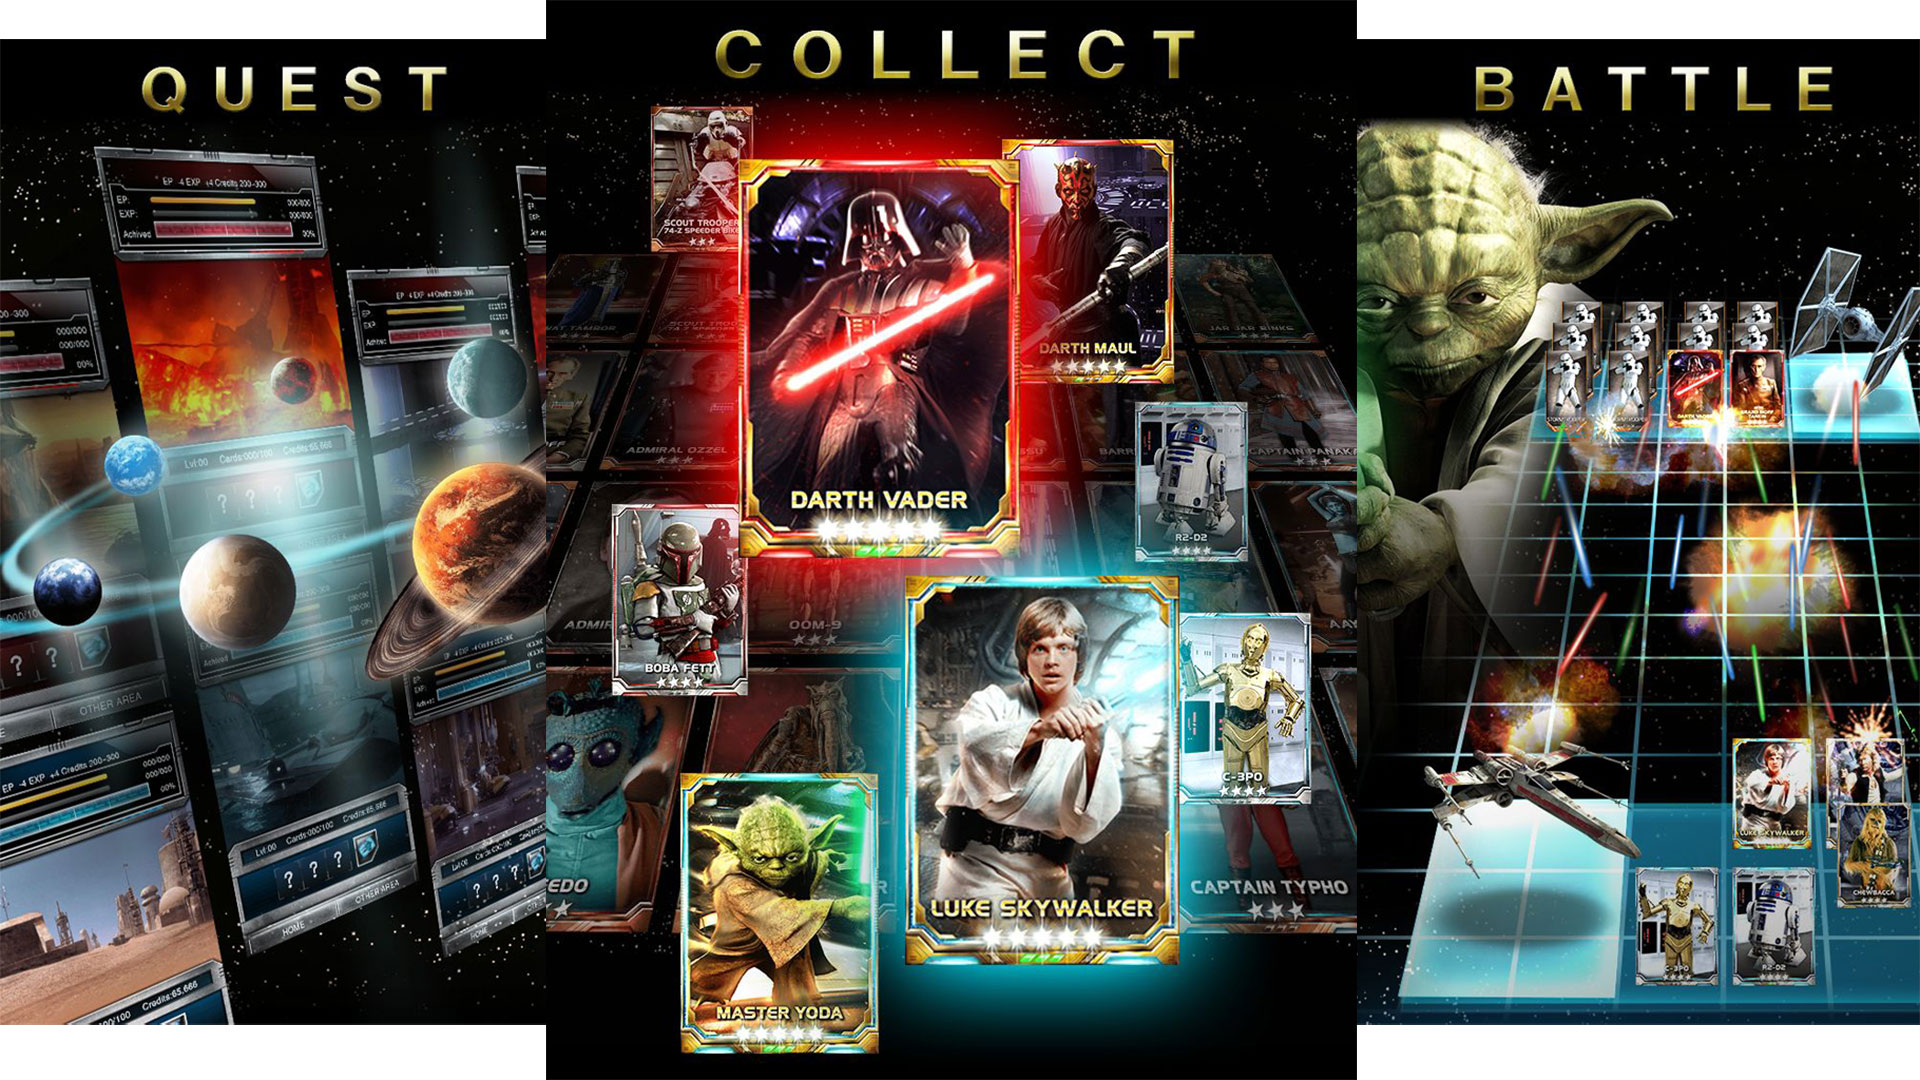 Modojo | Devs Share Their Star Wars: Force Collection Tips and Tricks - Part 1